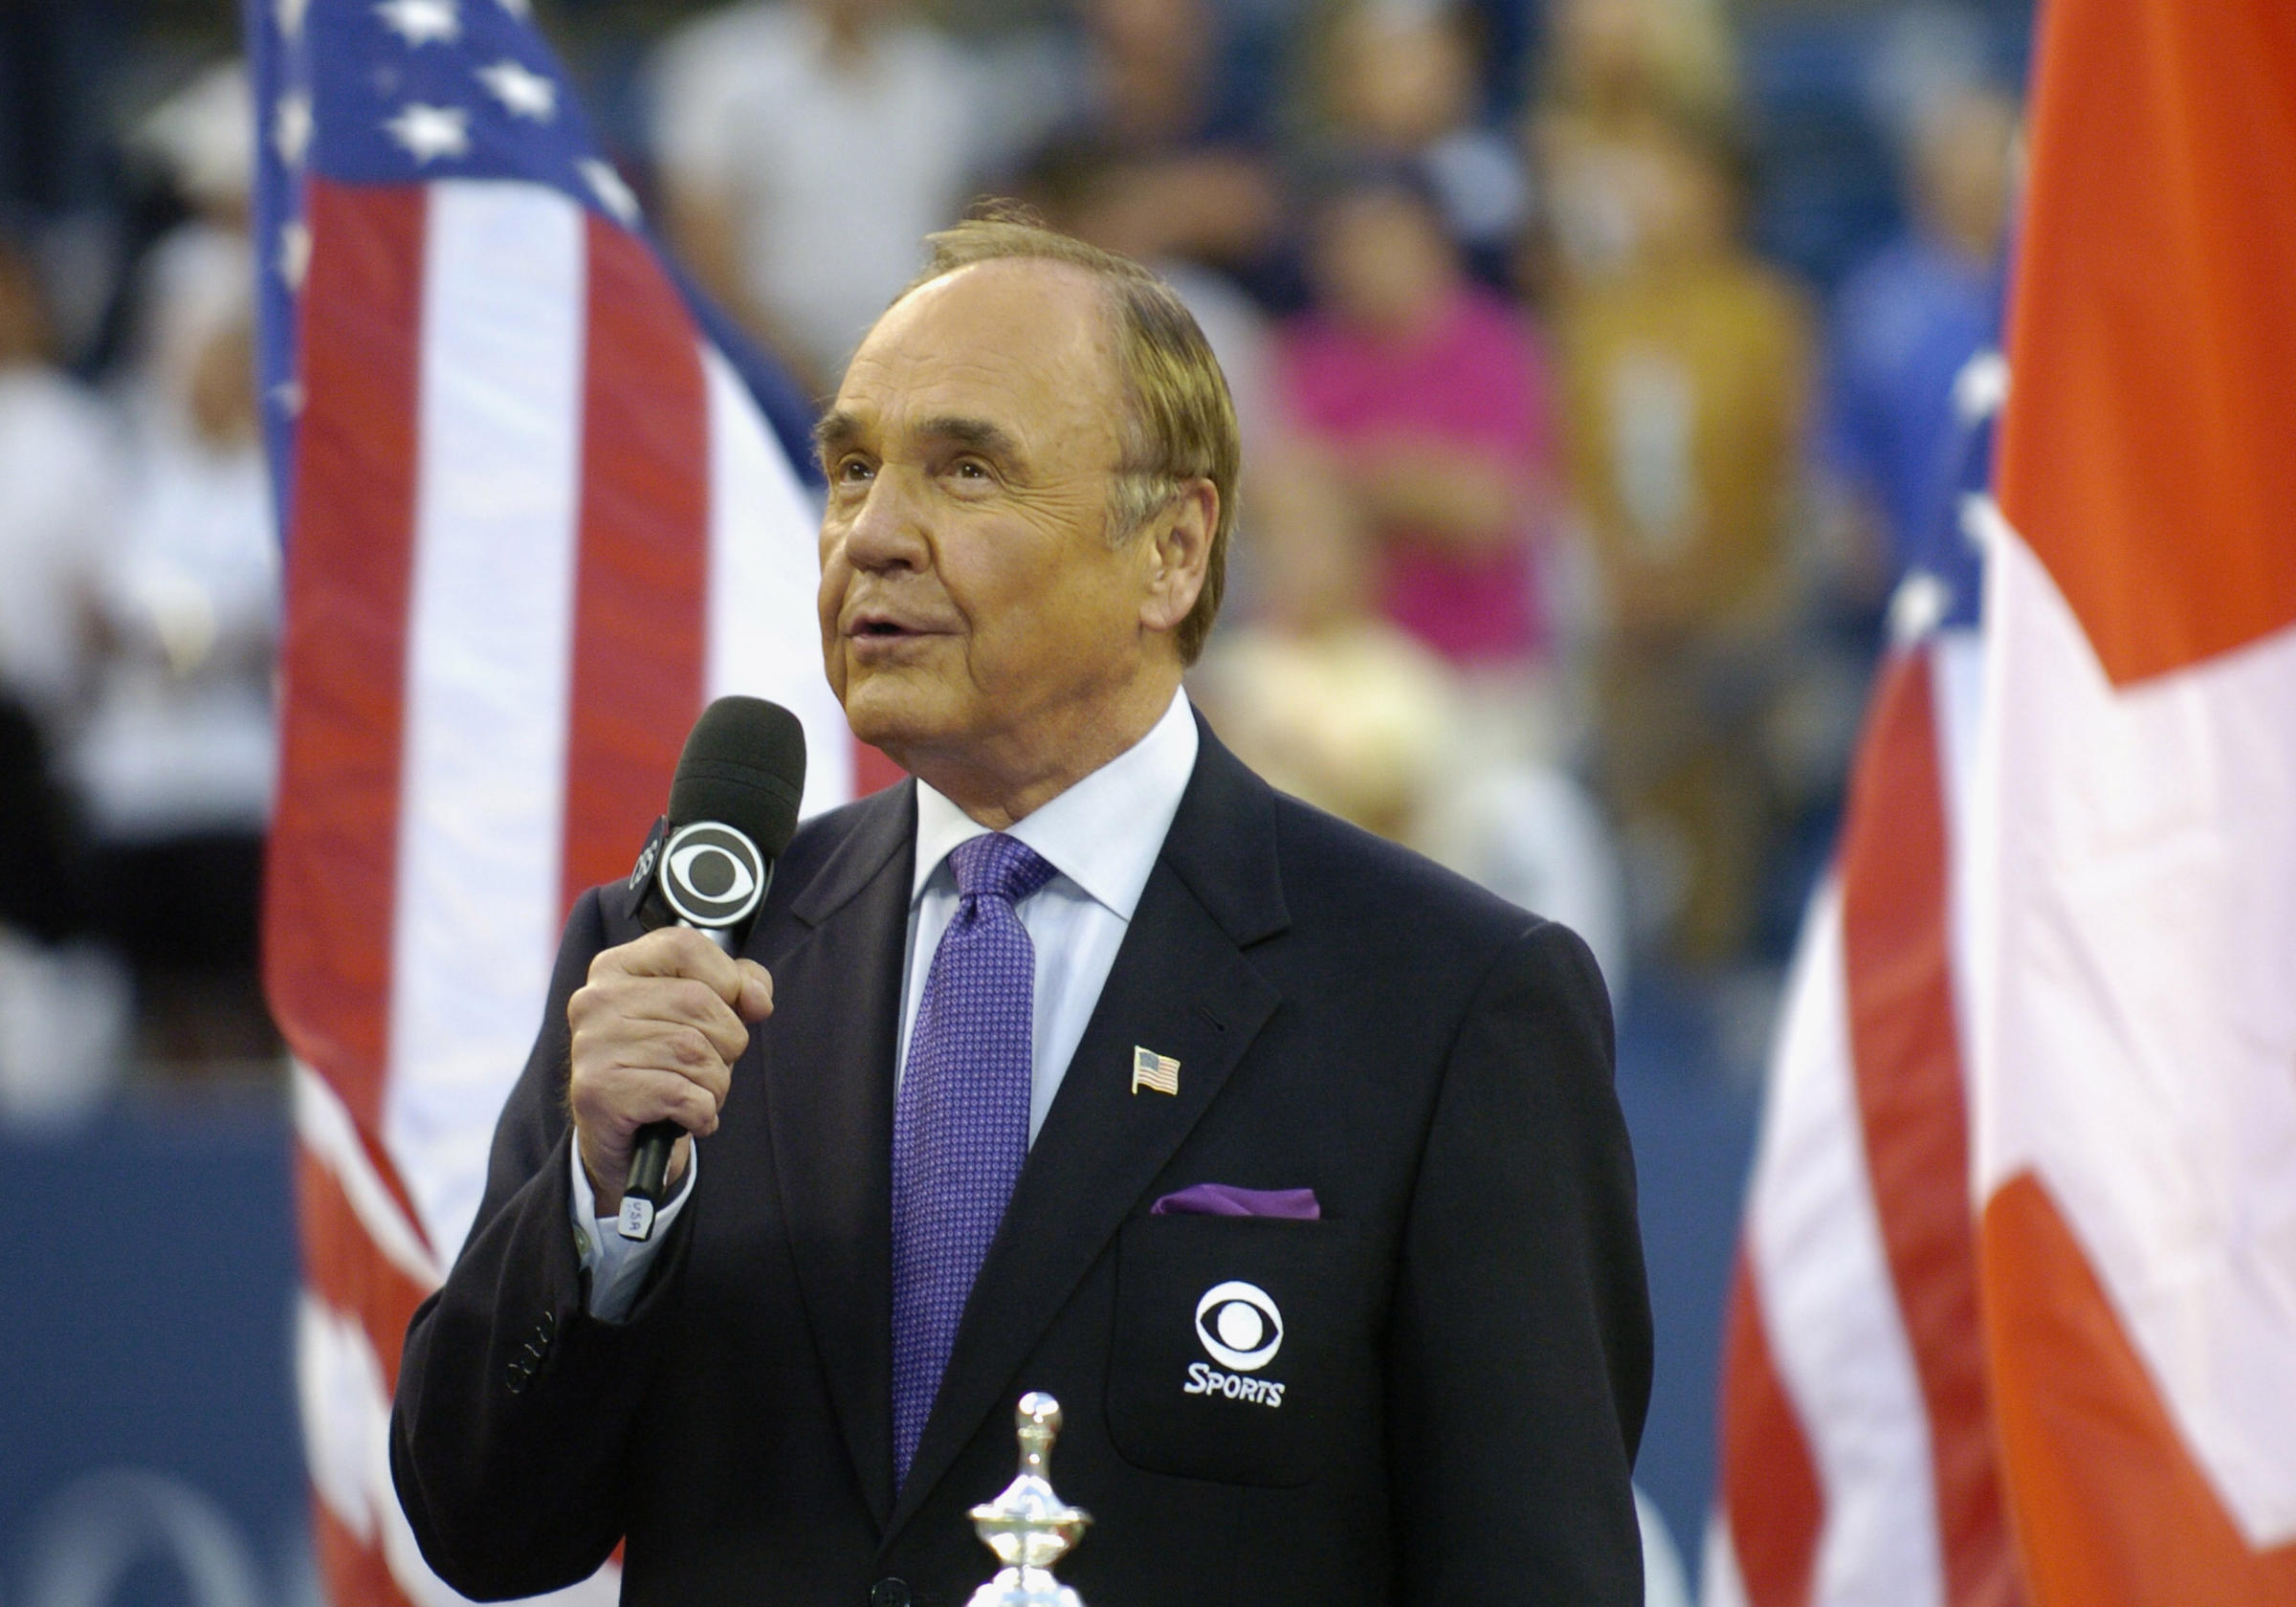 Sportscaster Dick Enberg Revisits the Friendship of a